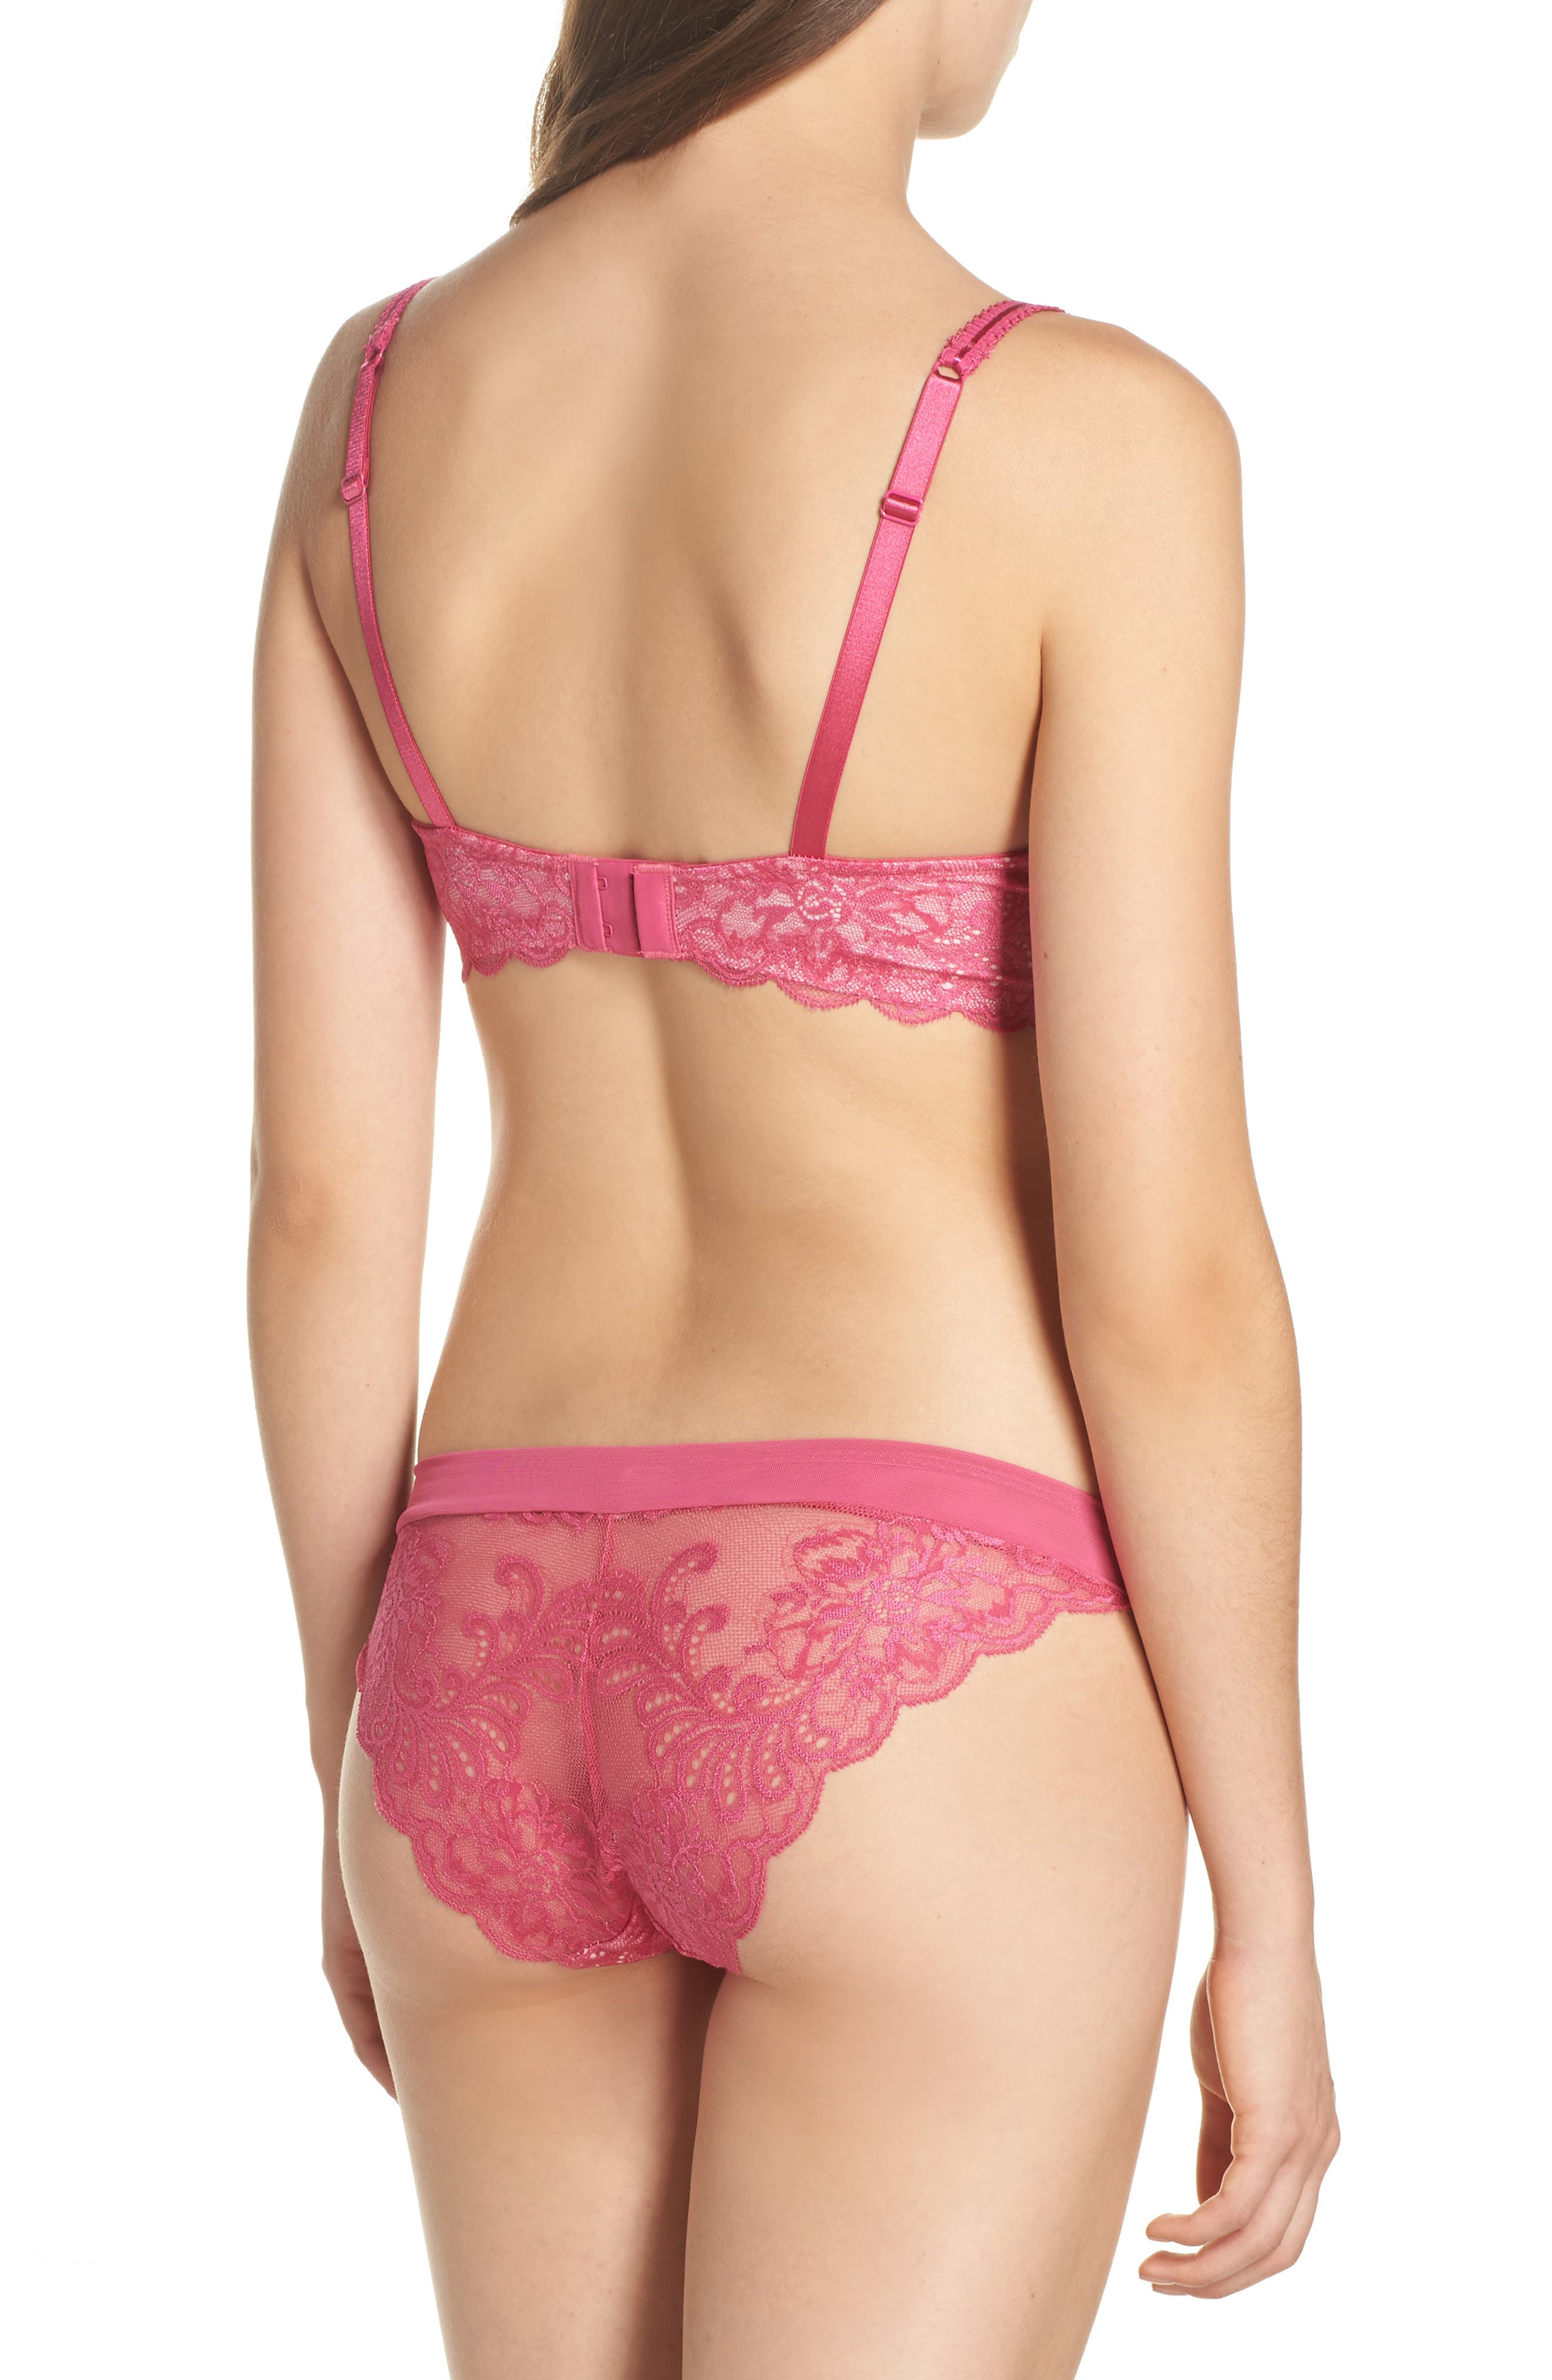 'Sophia'  Lace Underwire Bra,                             Alternate thumbnail 3, color,                             Mademoiselle